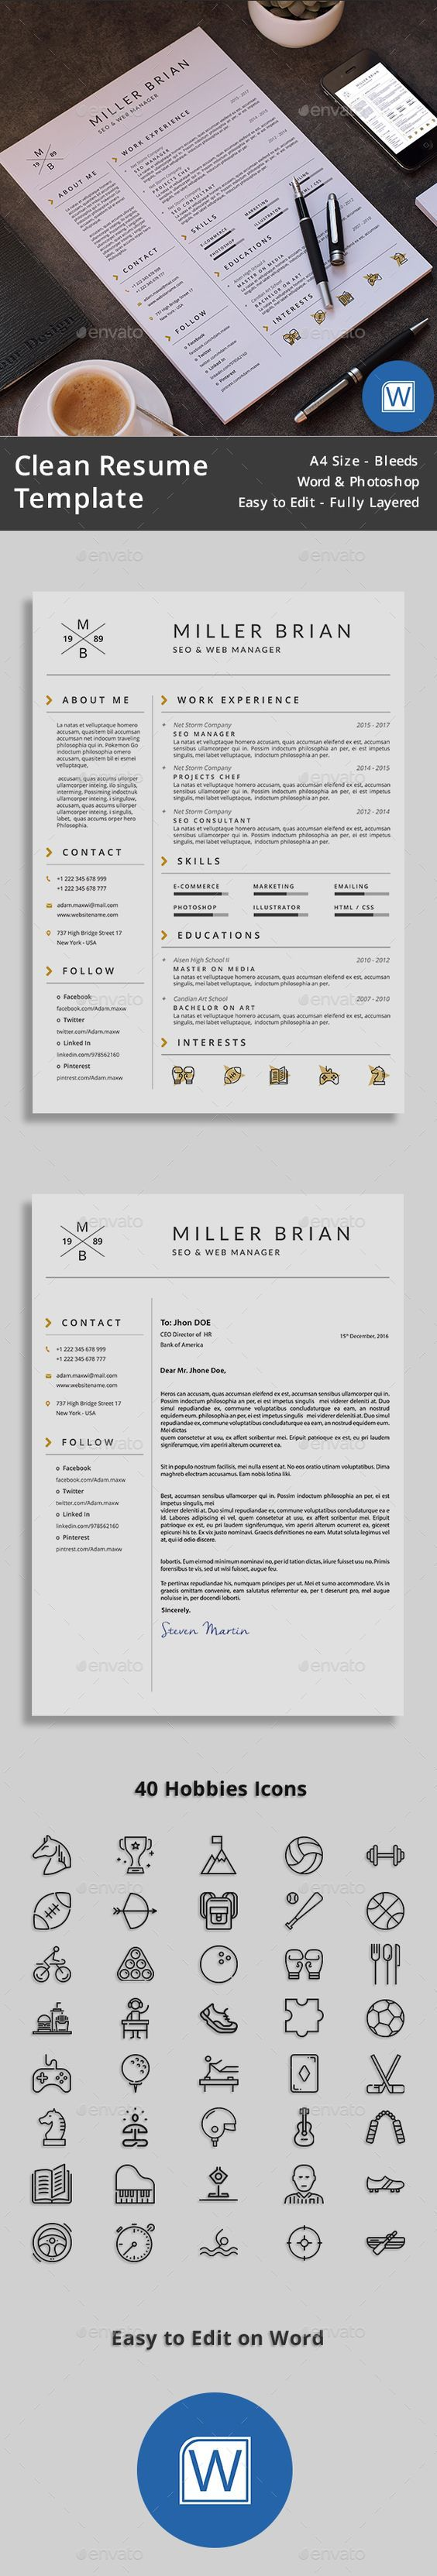 Best Modern Resume Templates Images On